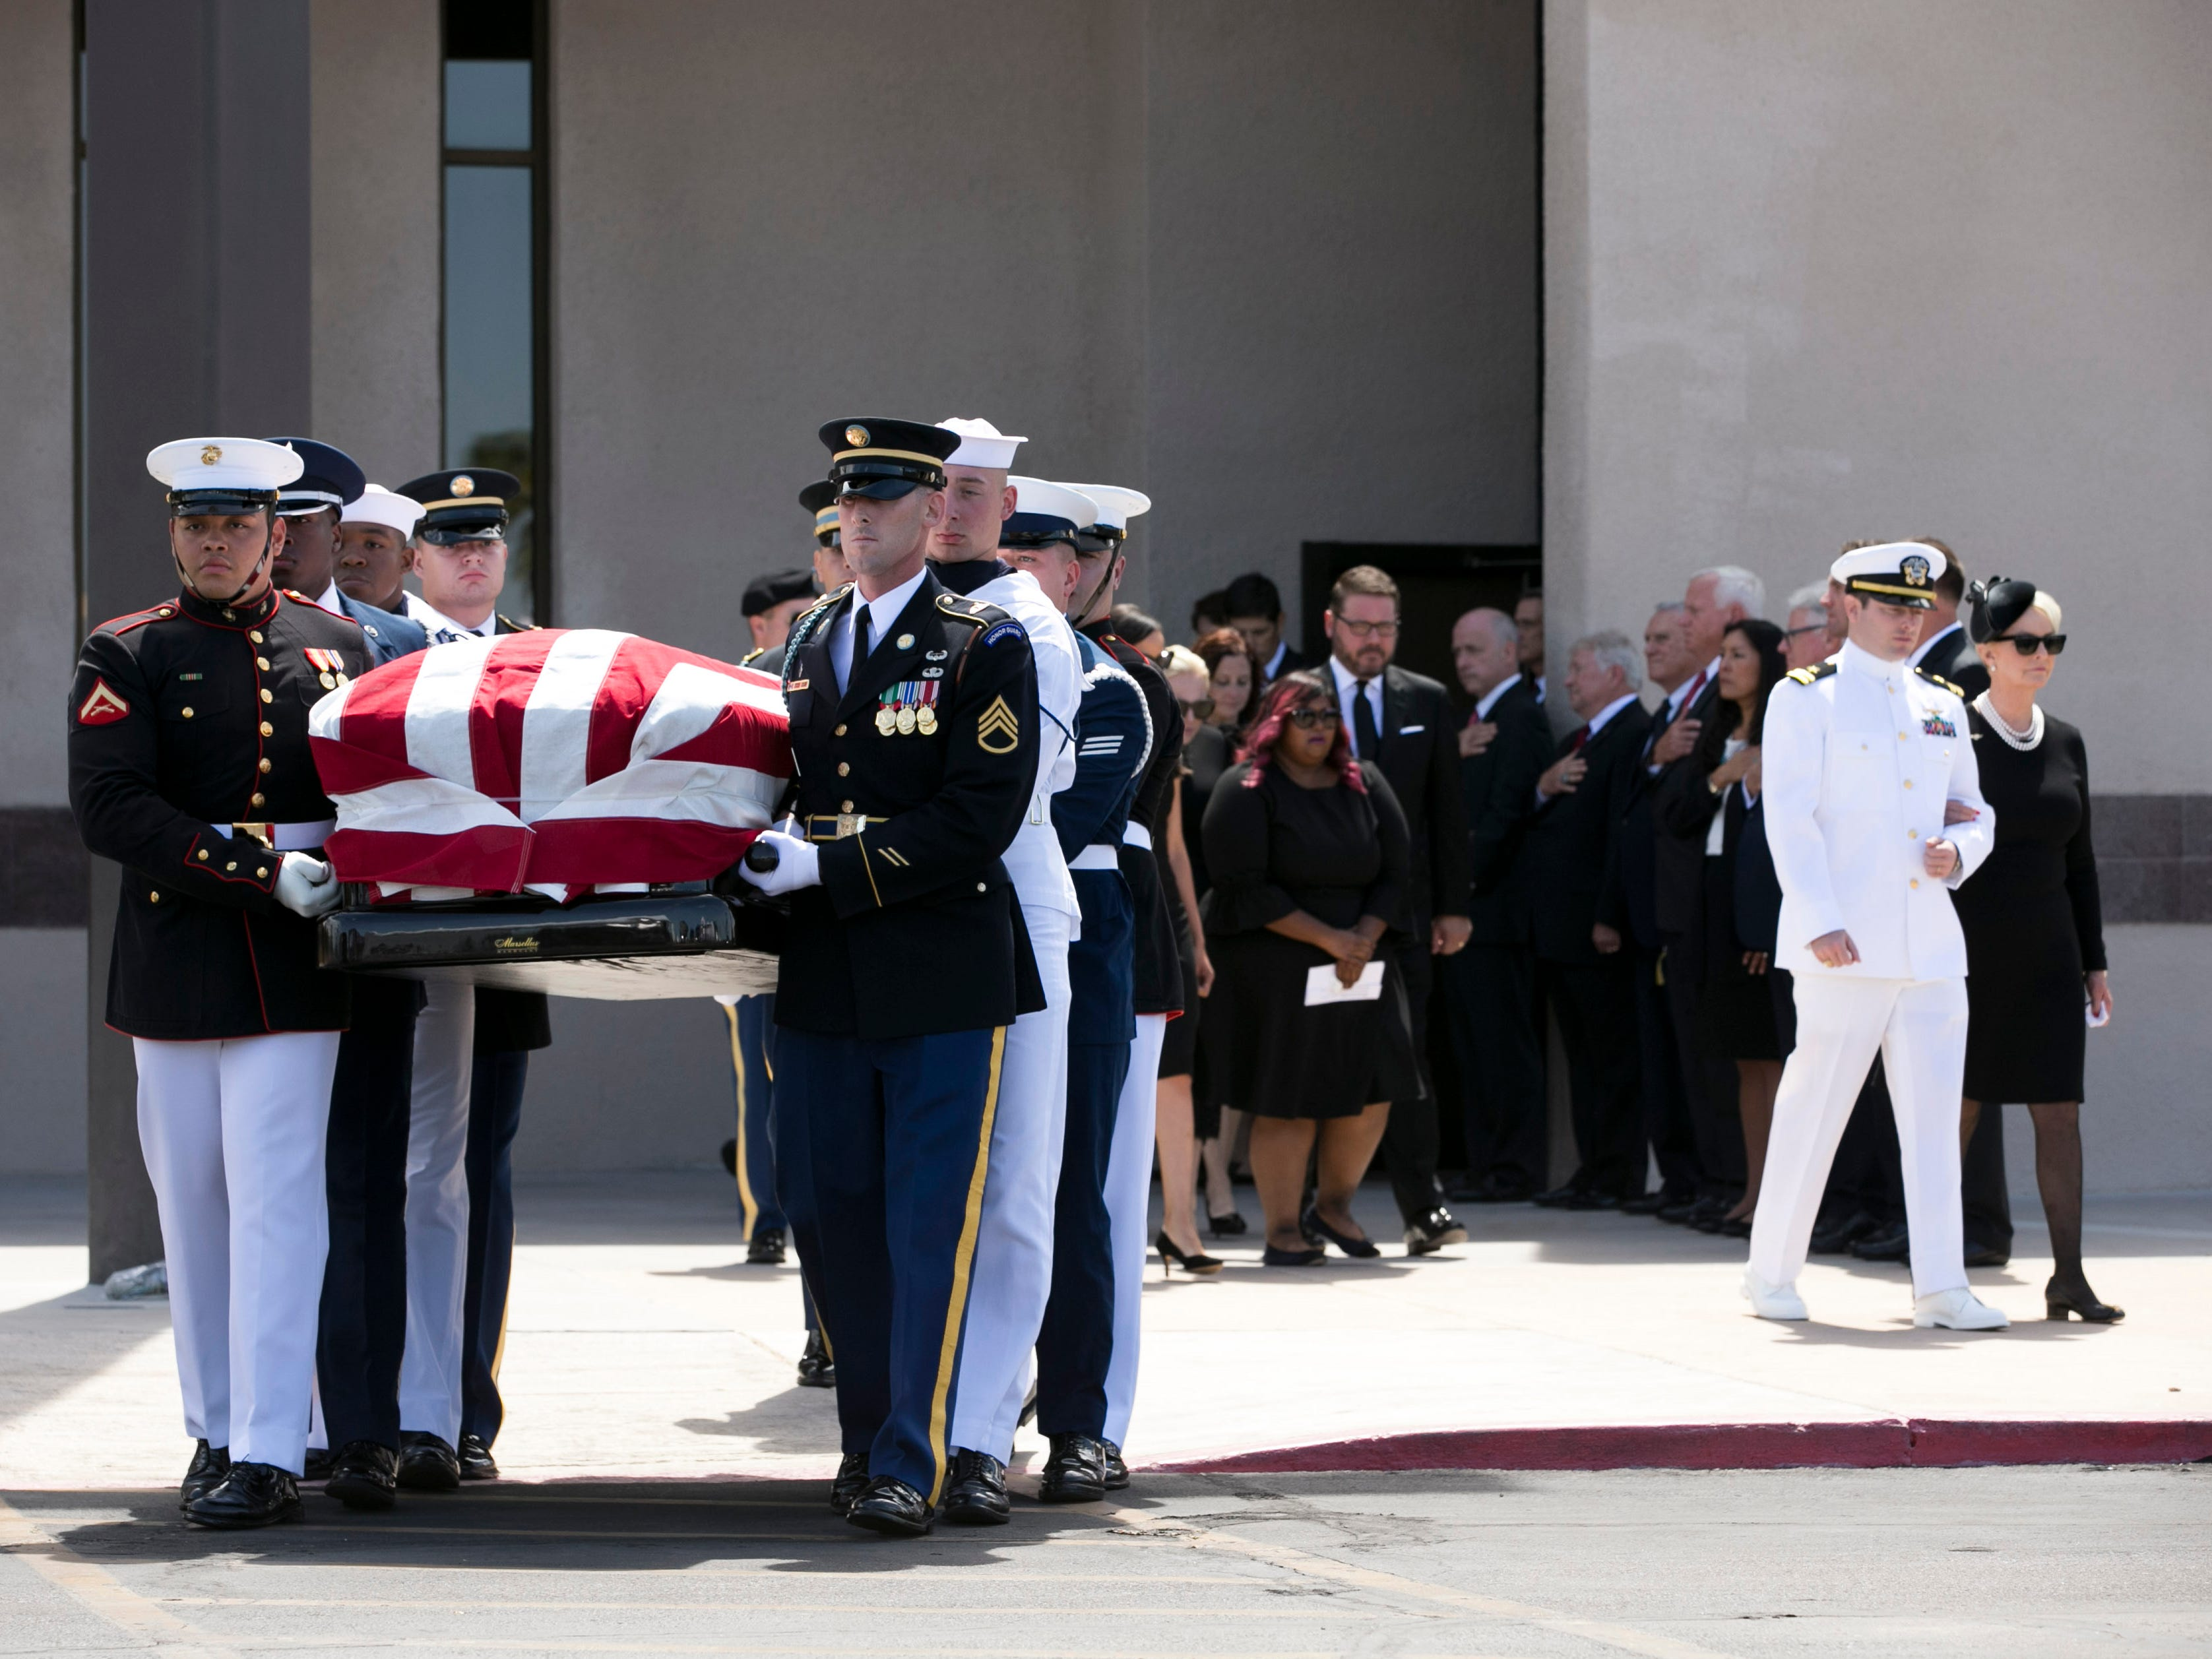 Members of the United States military carry the flag draped casket of Sen. John McCain out of North Phoenix Baptist Church as Jack McCain, right, escorts his mother, Cindy McCain, out of the church following a memorial service, Aug. 30, 2018, in Phoenix.